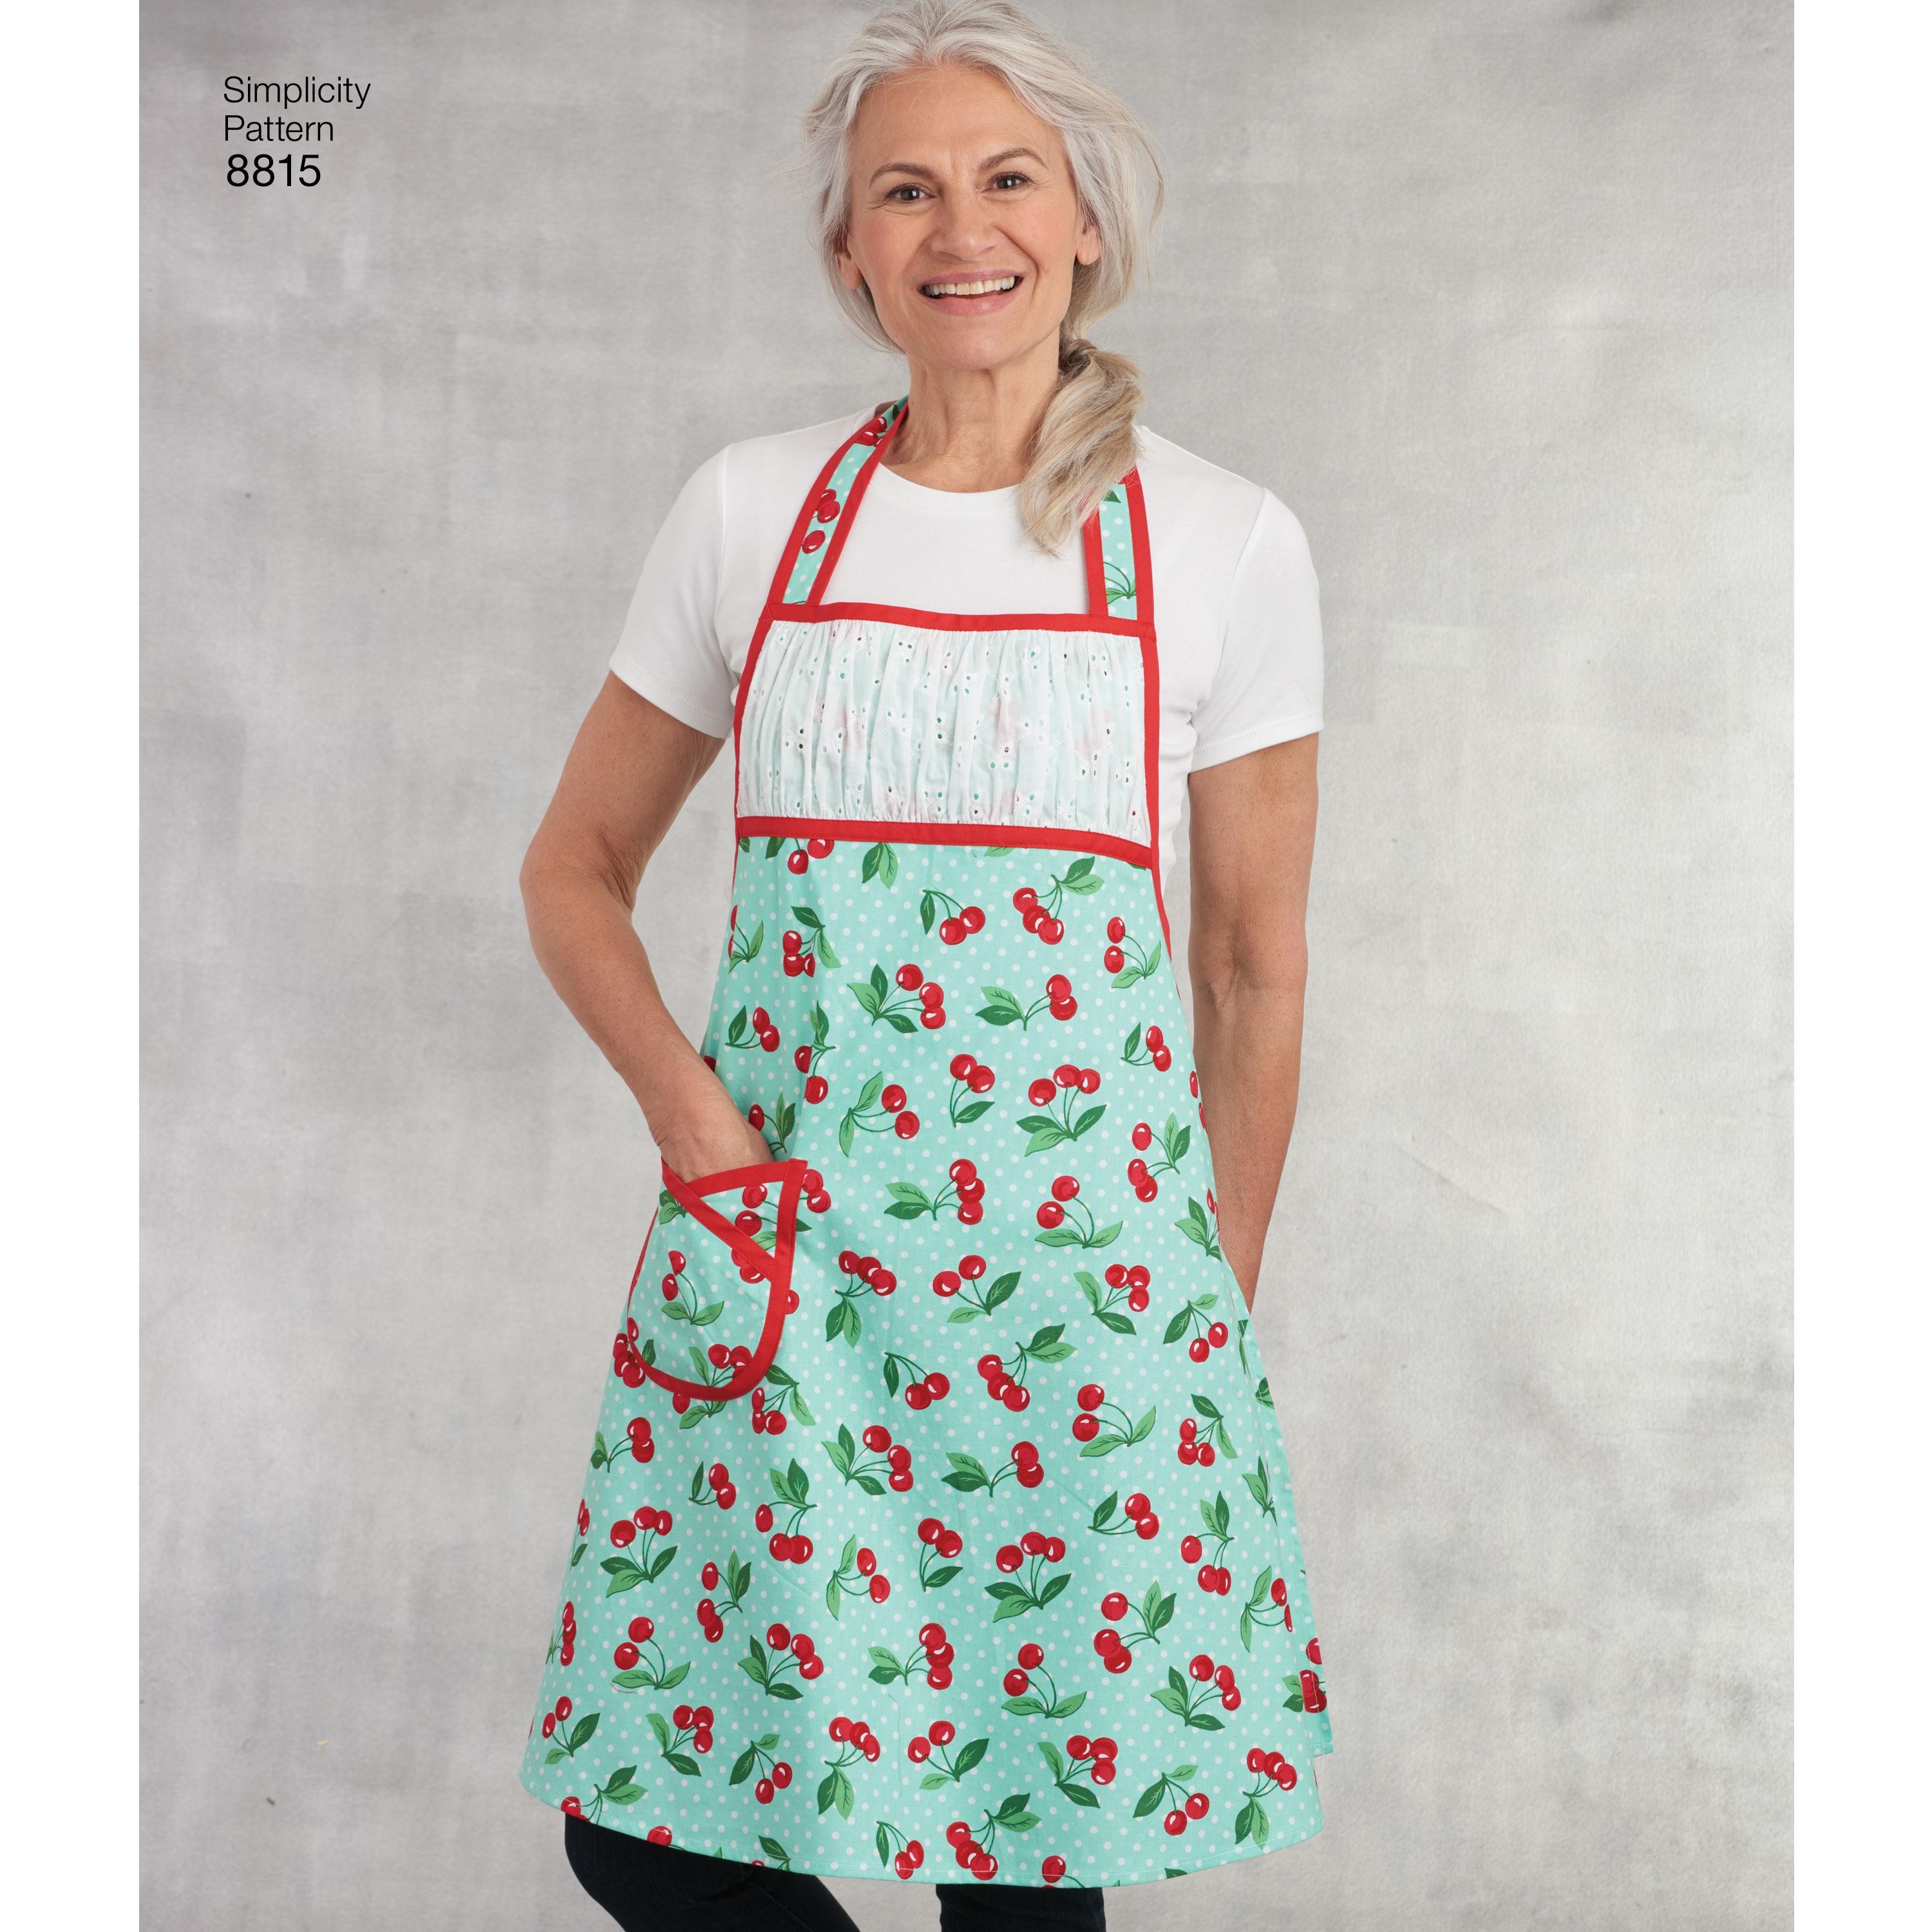 Simplicity S8815 Child's and Misses' Apron